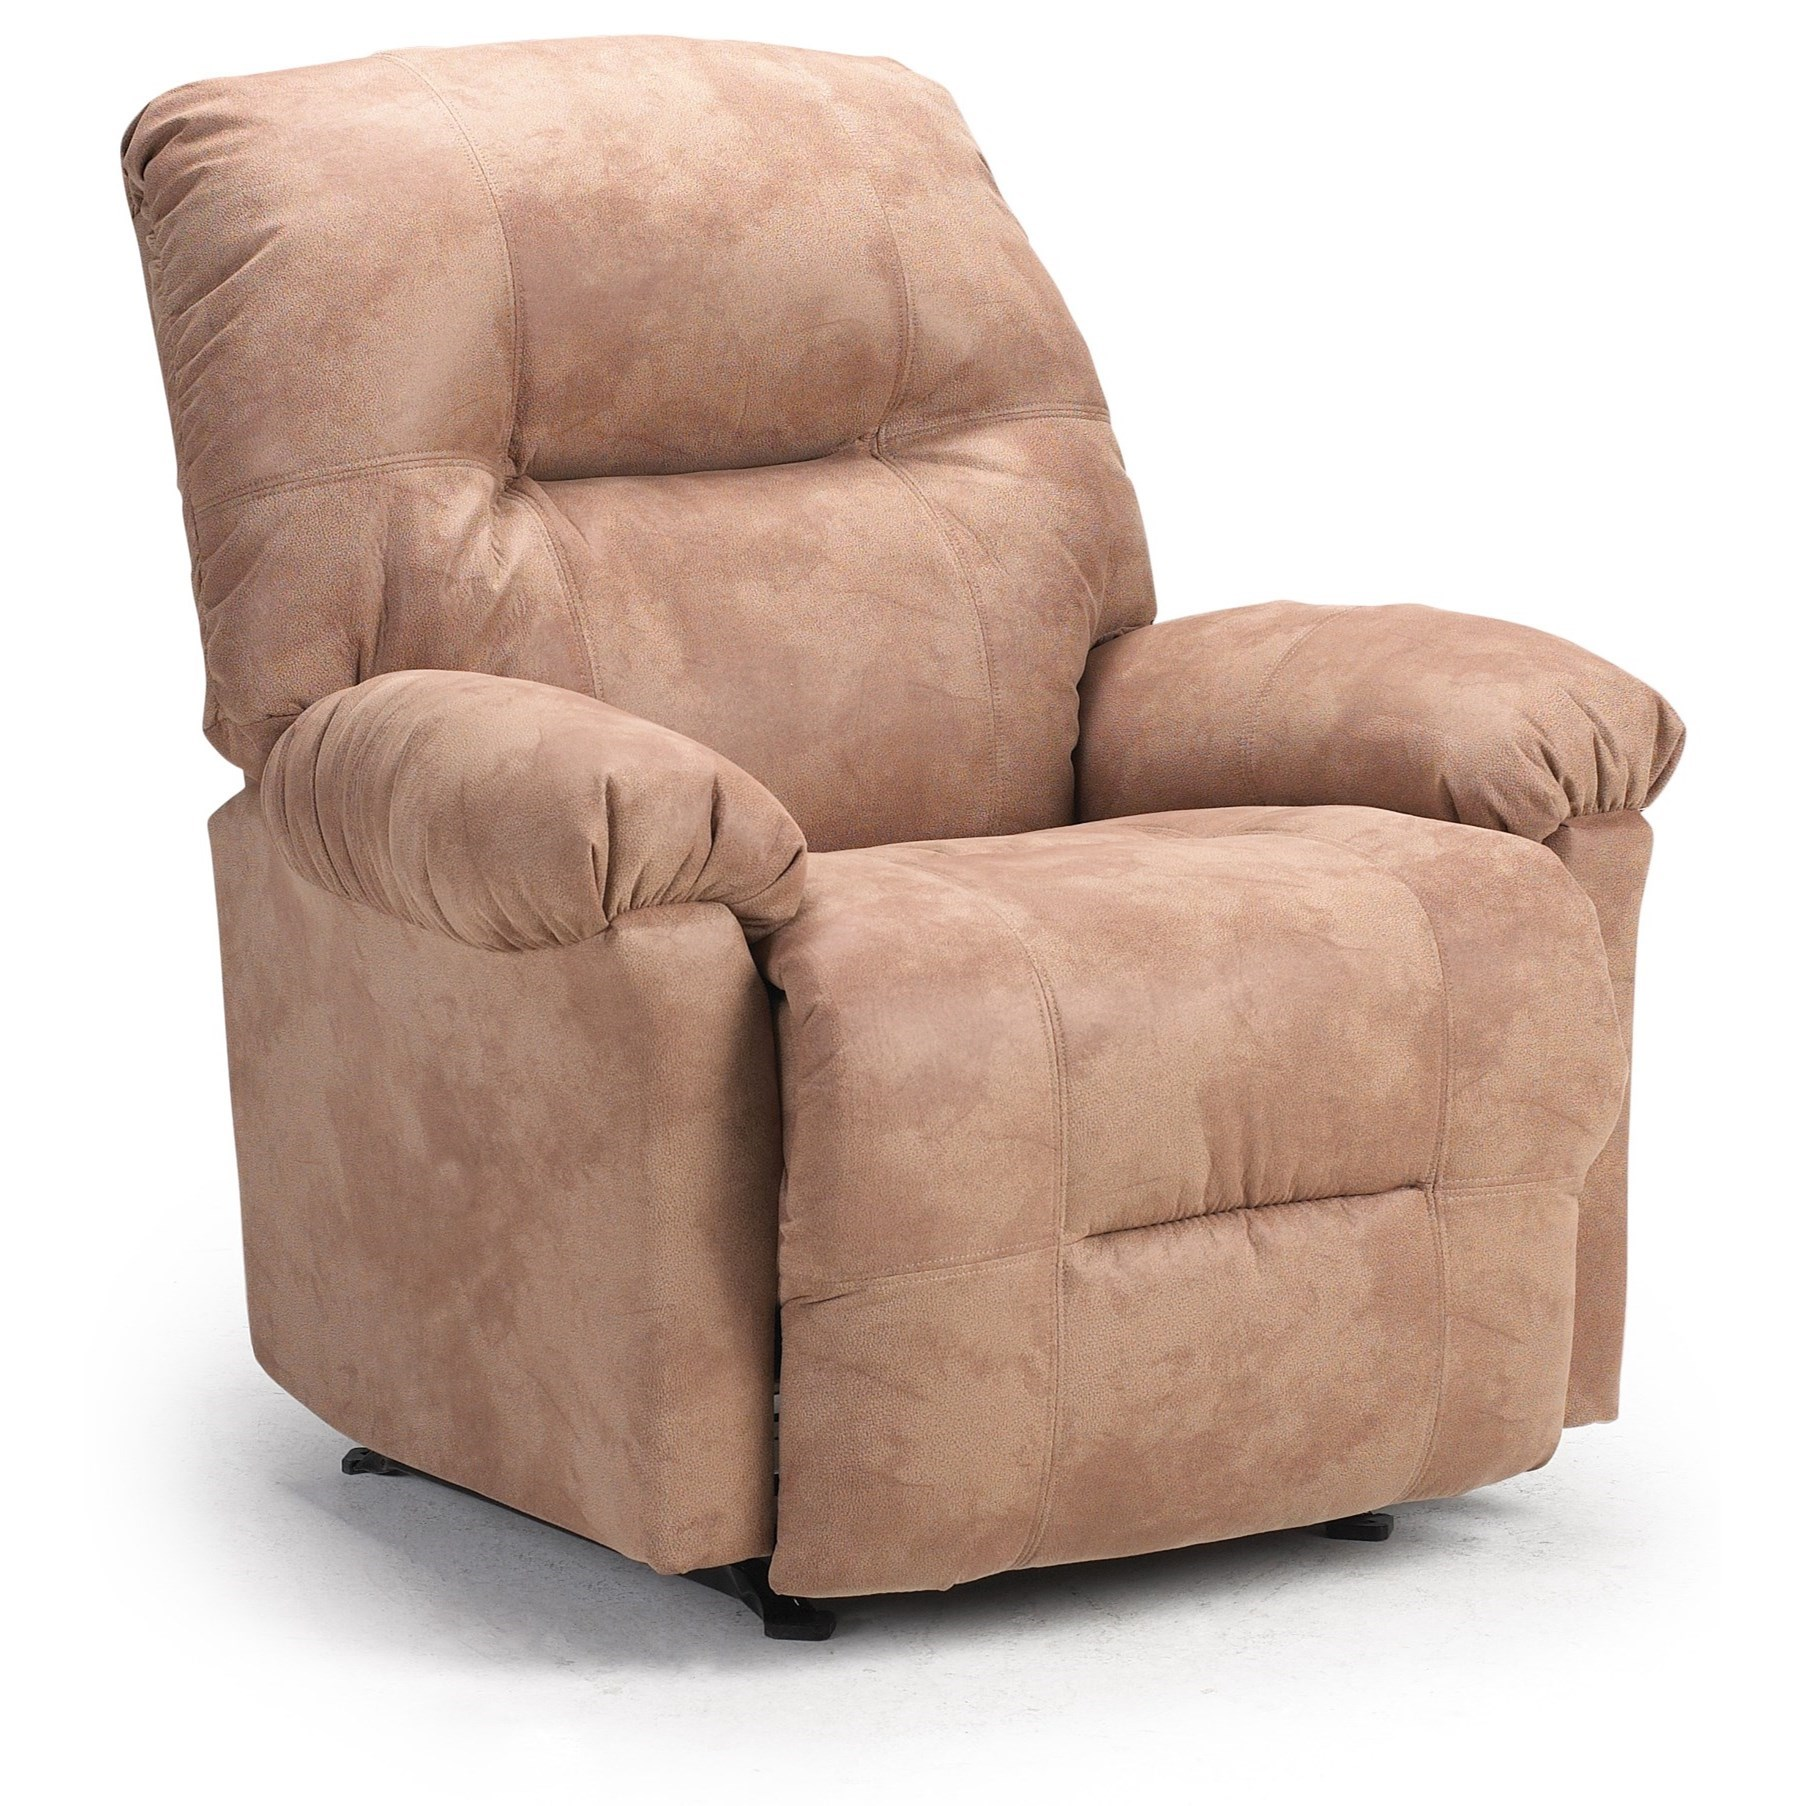 Best Home Furnishings Recliners Petite Wynette Swivel Rocking Reclining Chair Furniture